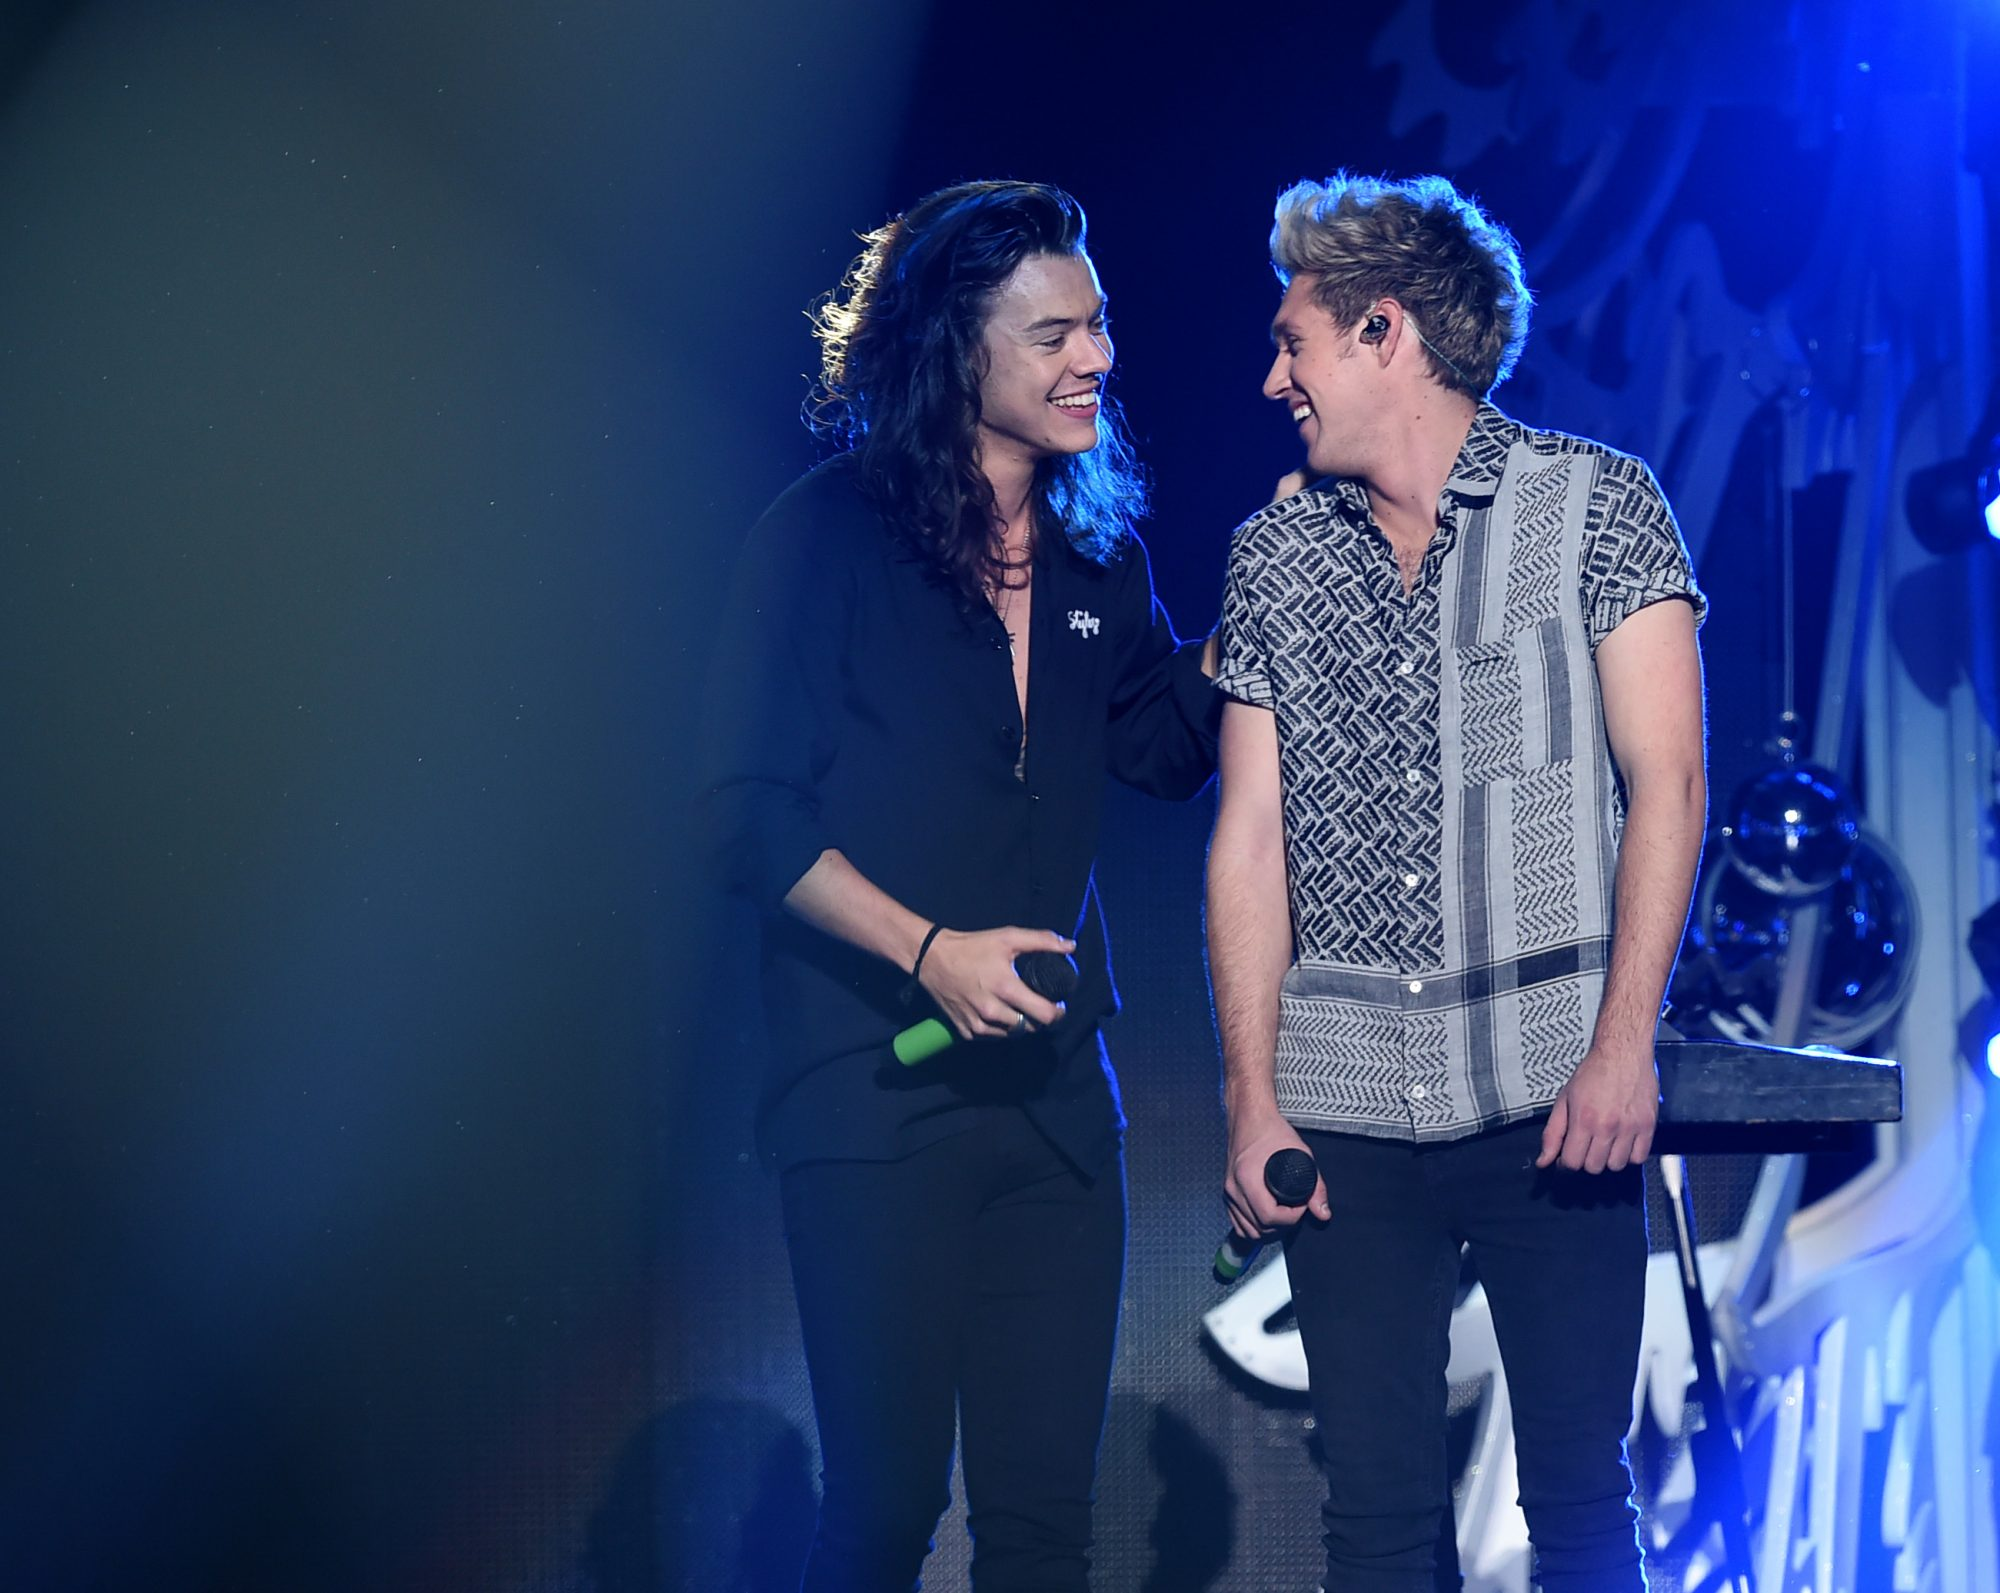 LOS ANGELES, CA - DECEMBER 04:  Recording artists Harry Styles (L) and Niall Horan of One Direction perform onstage during 102.7 KIIS FM's Jingle Ball 2015 Presented by Capital One at STAPLES CENTER on December 4, 2015 in Los Angeles, California.  (Photo by Kevin Winter/Getty Images for iHeartMedia)